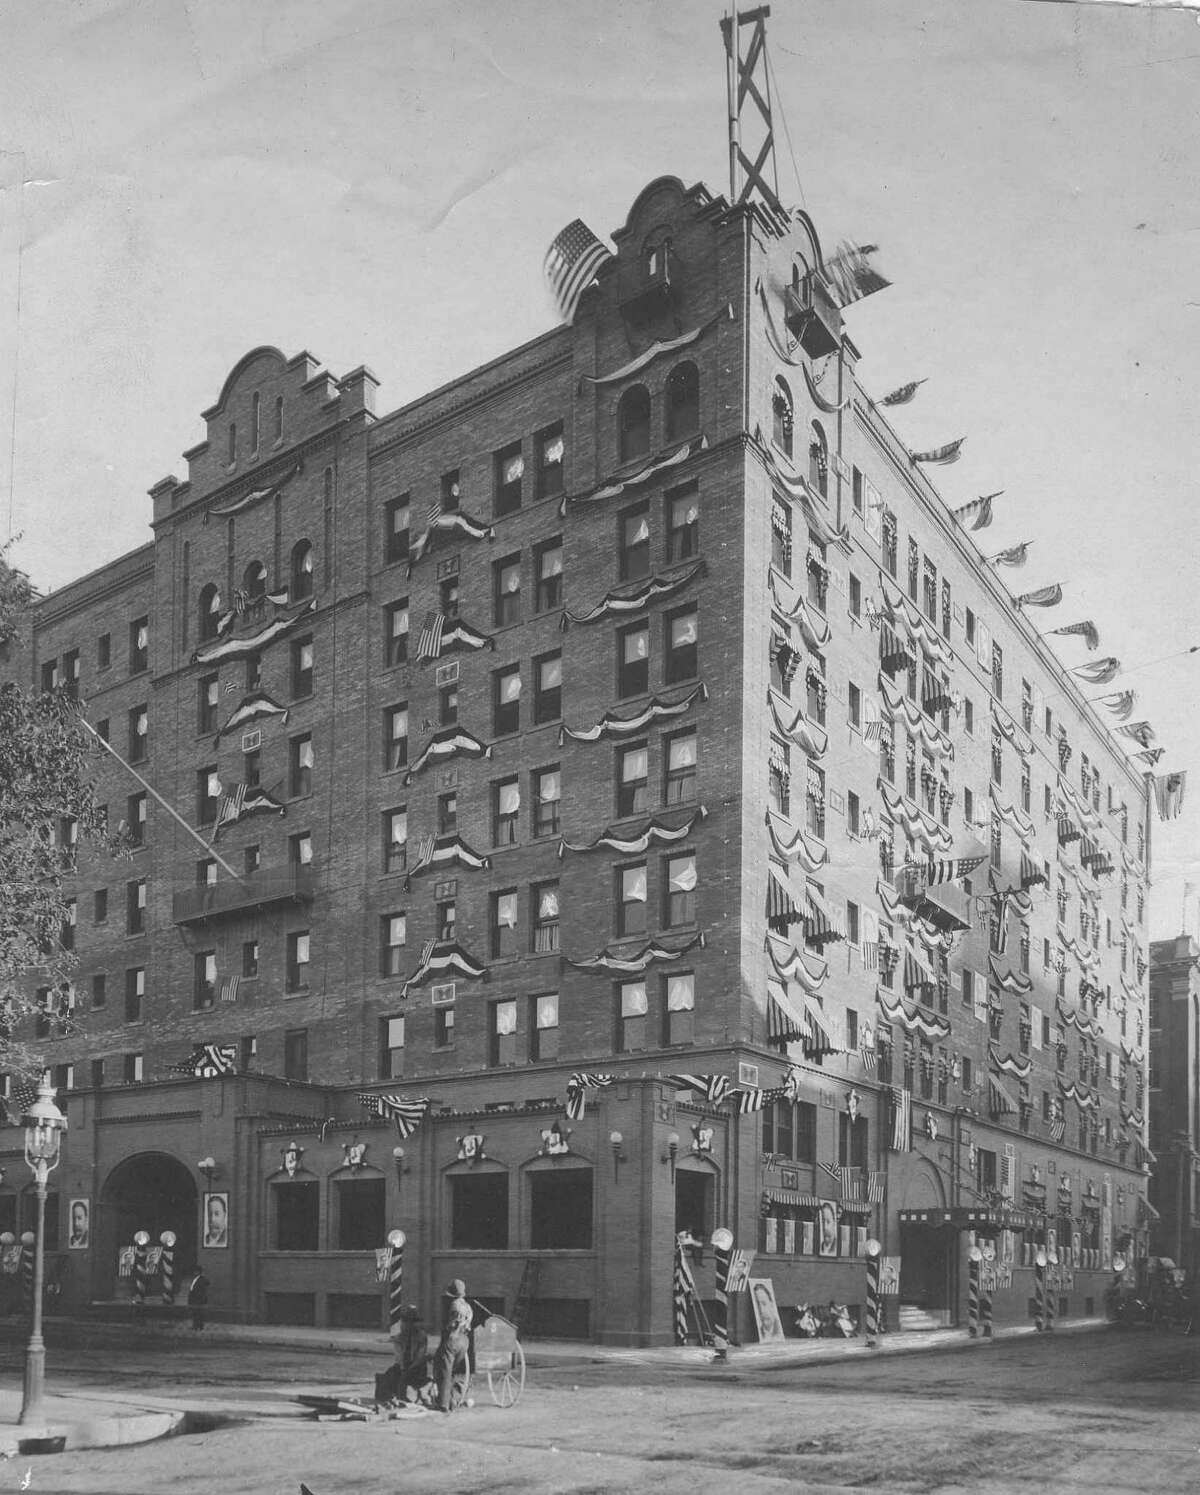 The St. Anthony Hotel is shown decked out in flags, bunting and pictures of President William Howard Taft in celebration of his visit to San Antonio on Oct. 17, 1909. Taft stayed at the hotel. Published in the Express, October 17, 1909.